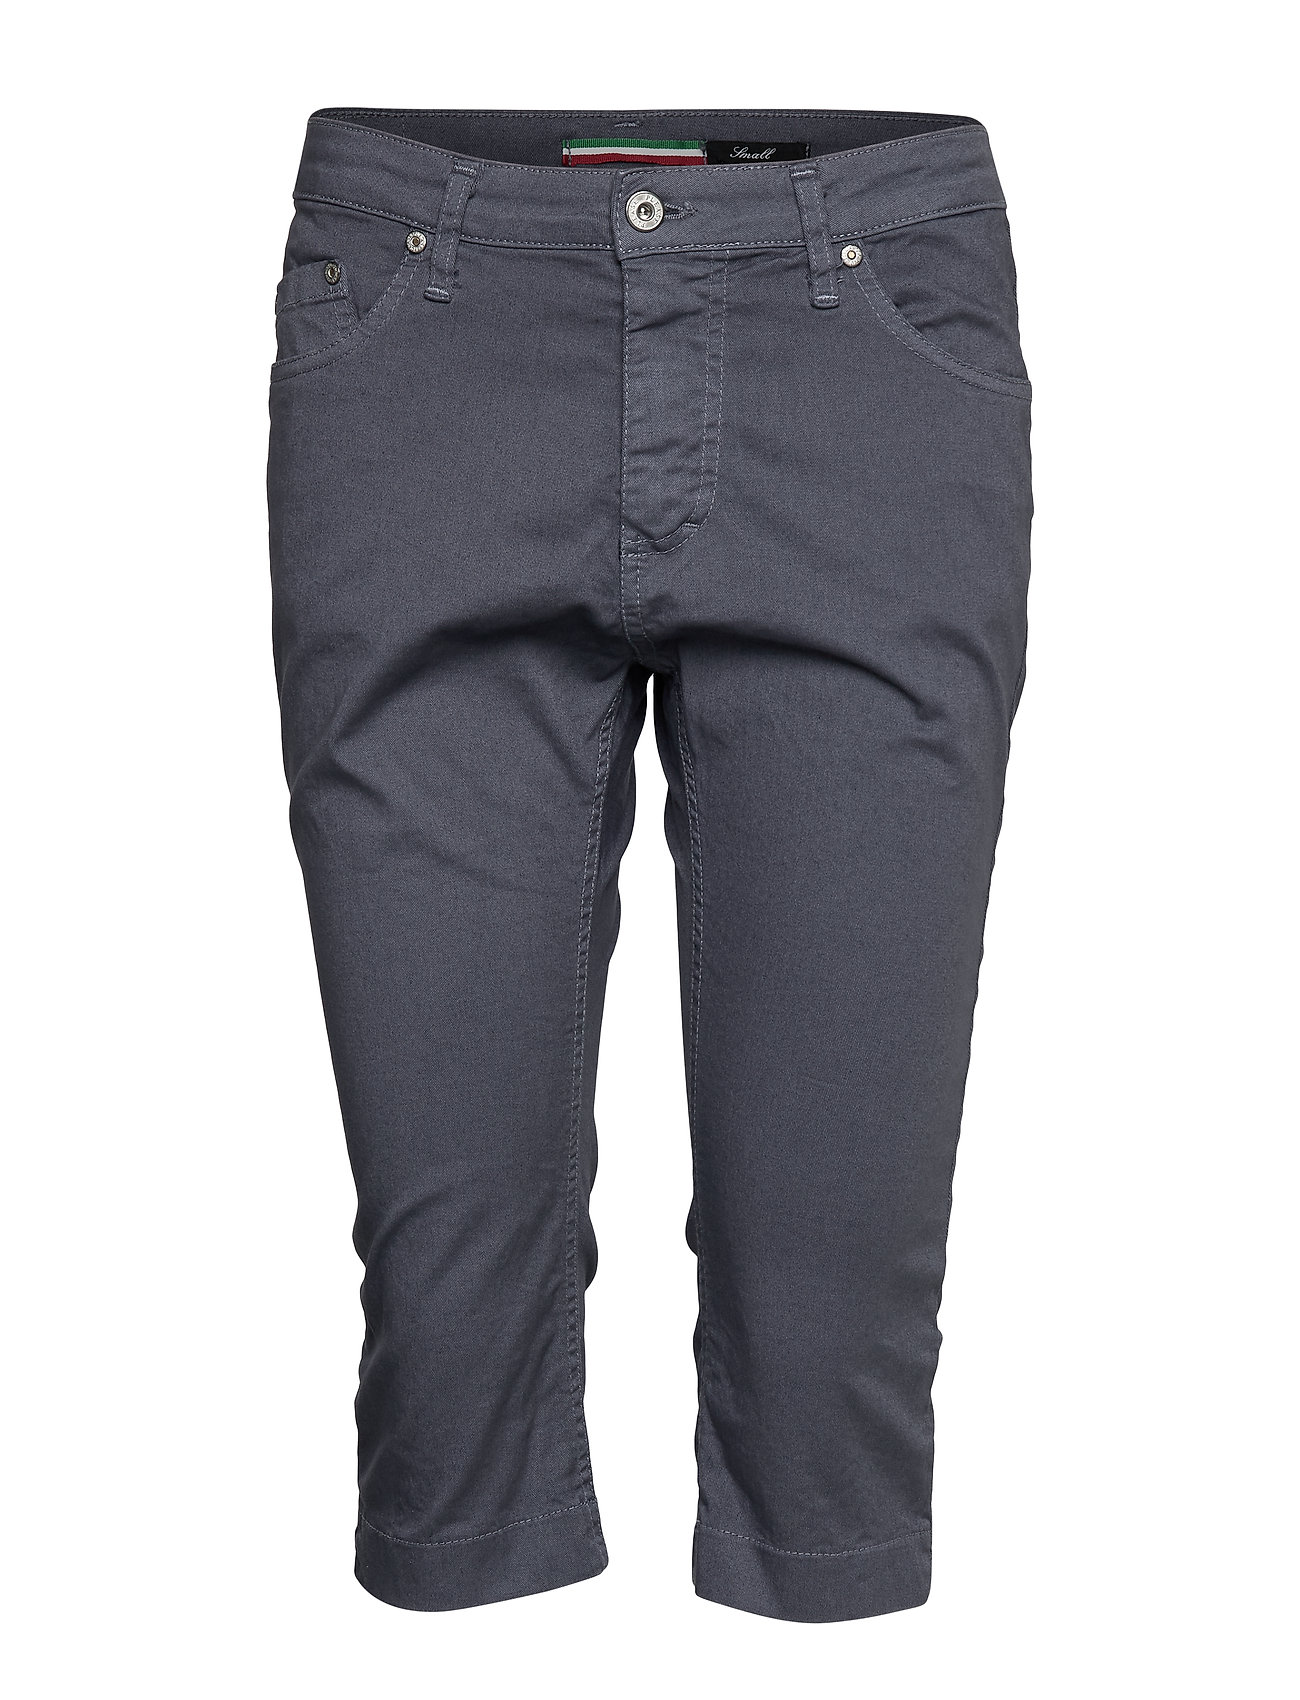 Image of Capri Cotton Trousers Capri Trousers Blå Please Jeans (3312099751)